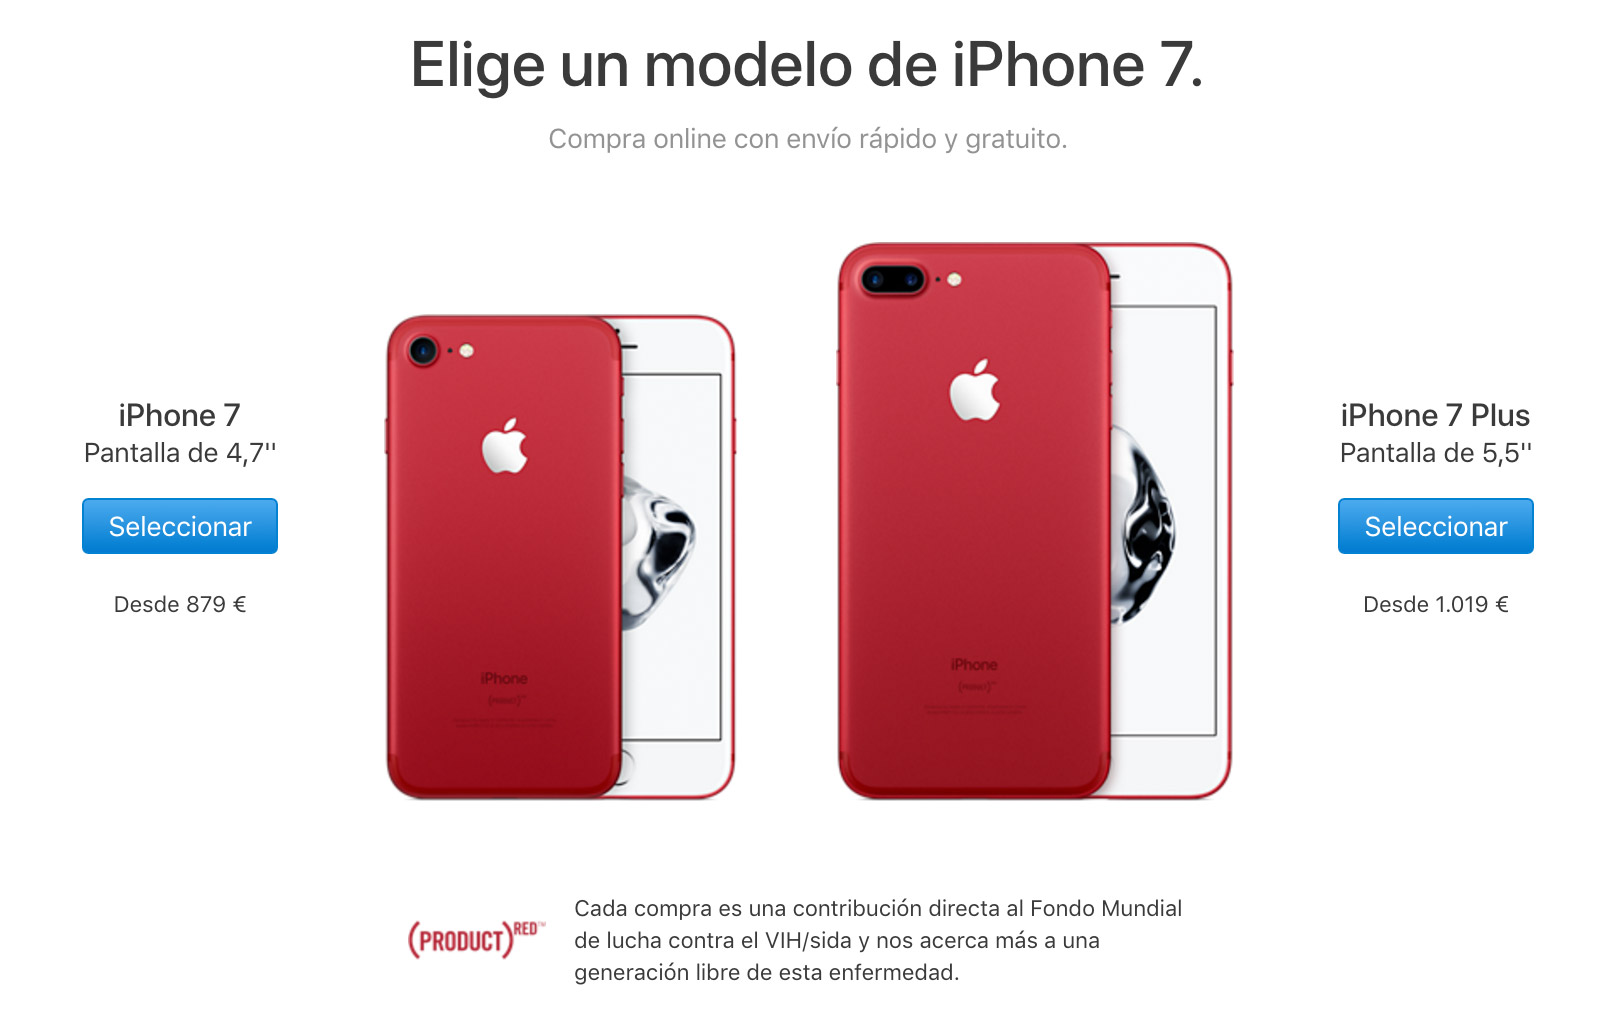 iPhone 7 PRODUCT(RED) ya a la venta